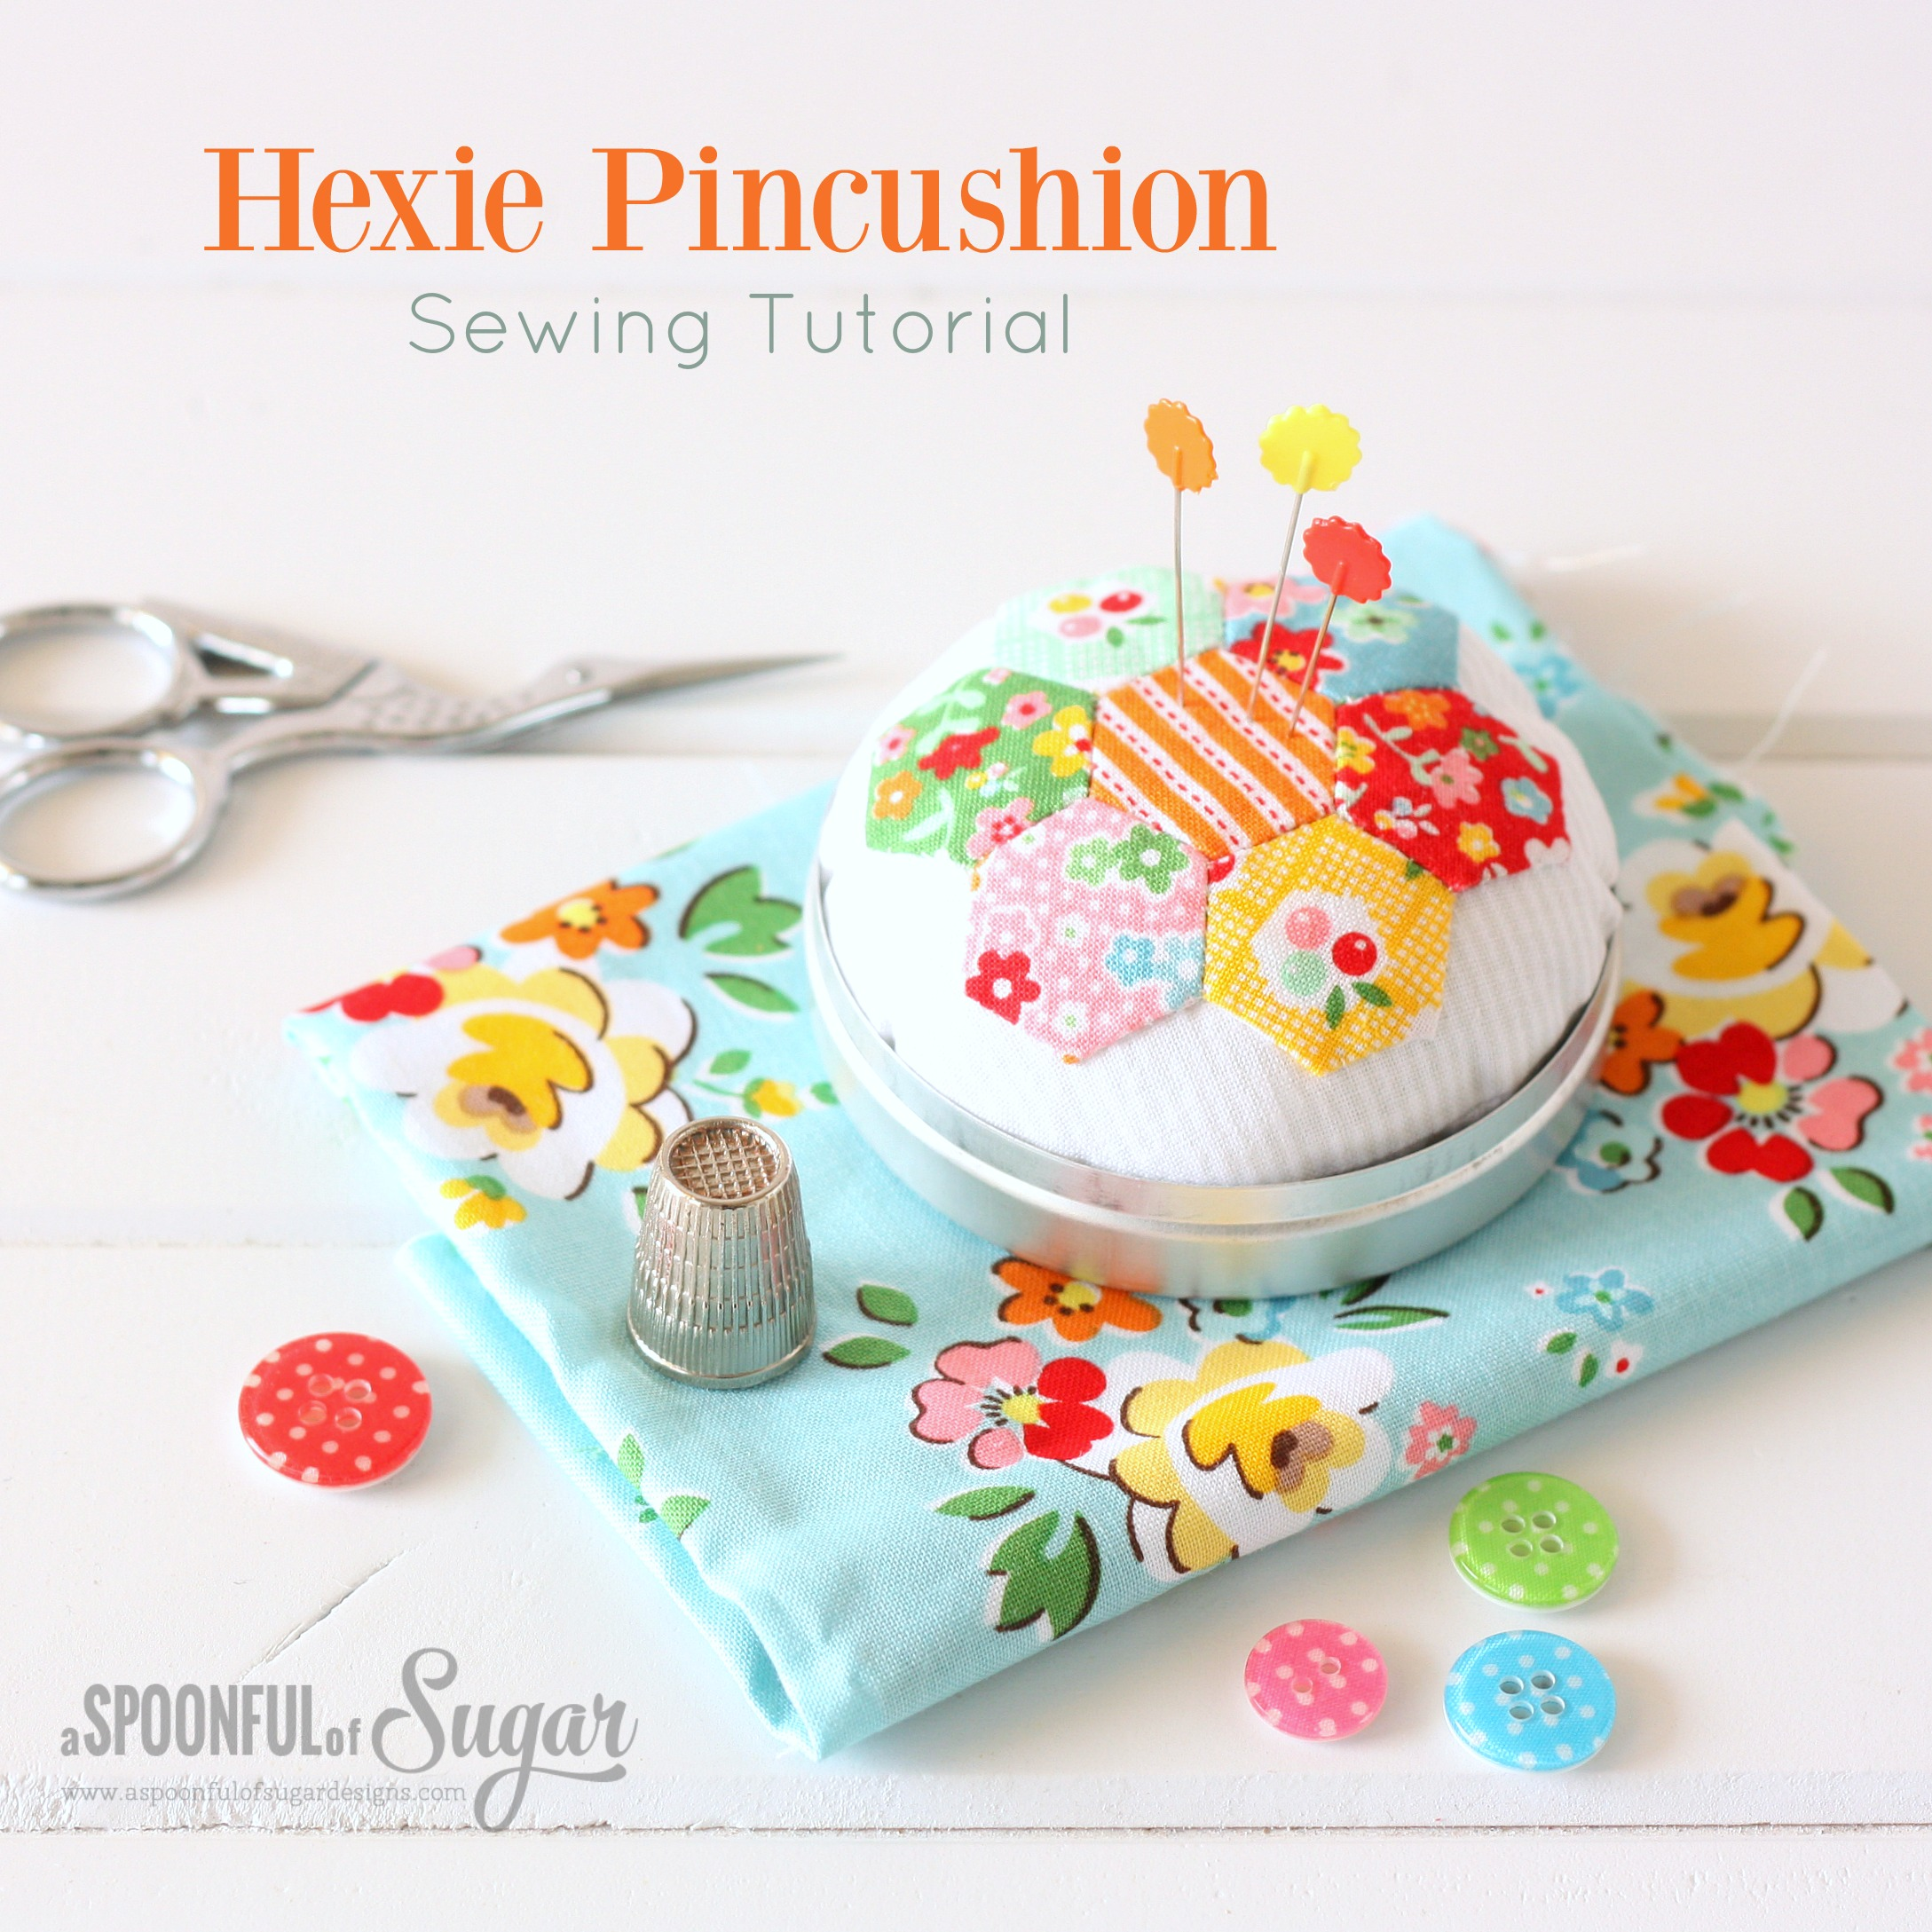 Hexie Pincushion Sewing Tutorial